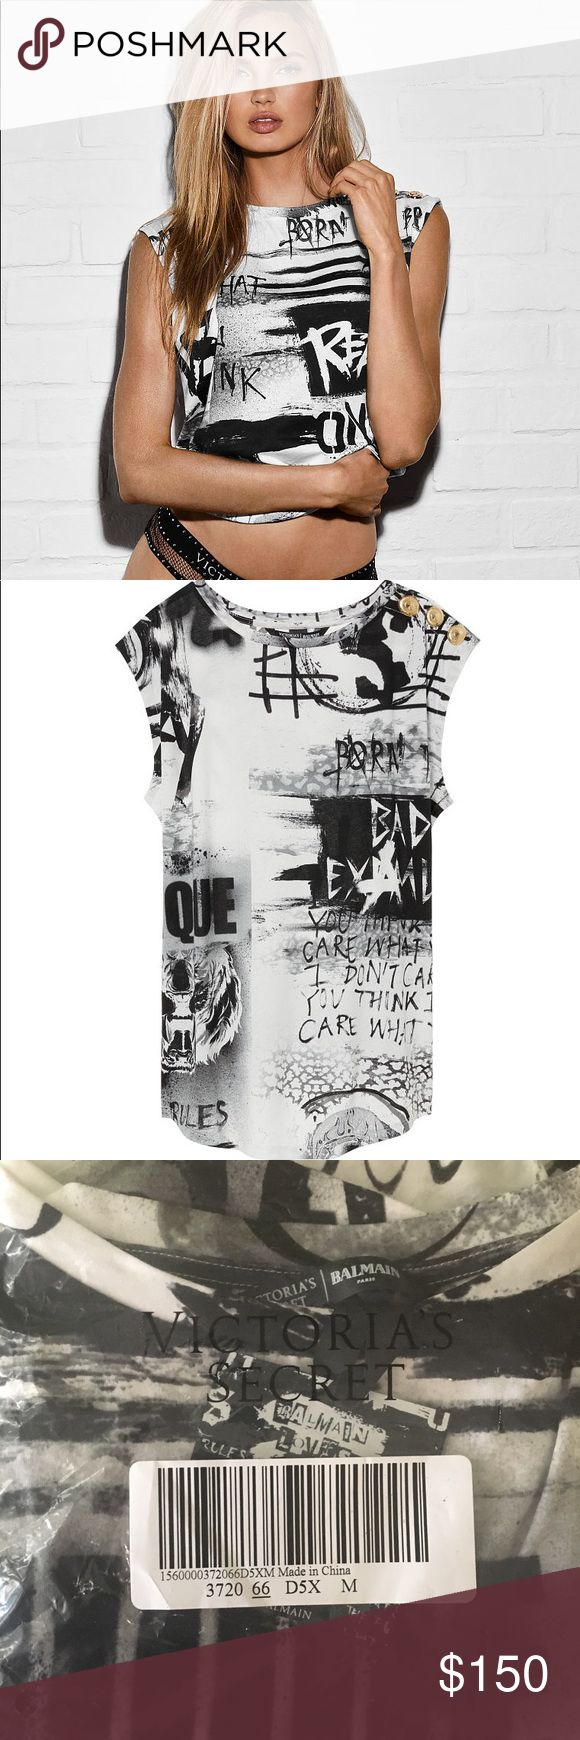 Victoria Secret x Balmain Graphic Top VS x Balmain Graphic Tee Brand NEW and Sold out online! Size: M Color: white/black Never worn or used Only of out of wrap to take photos Please don't ask for a model because I don't have anyone and certainly can't model it lol  Tags// vs balmain 2017 white/black new sold out Balmain Tops Crop Tops